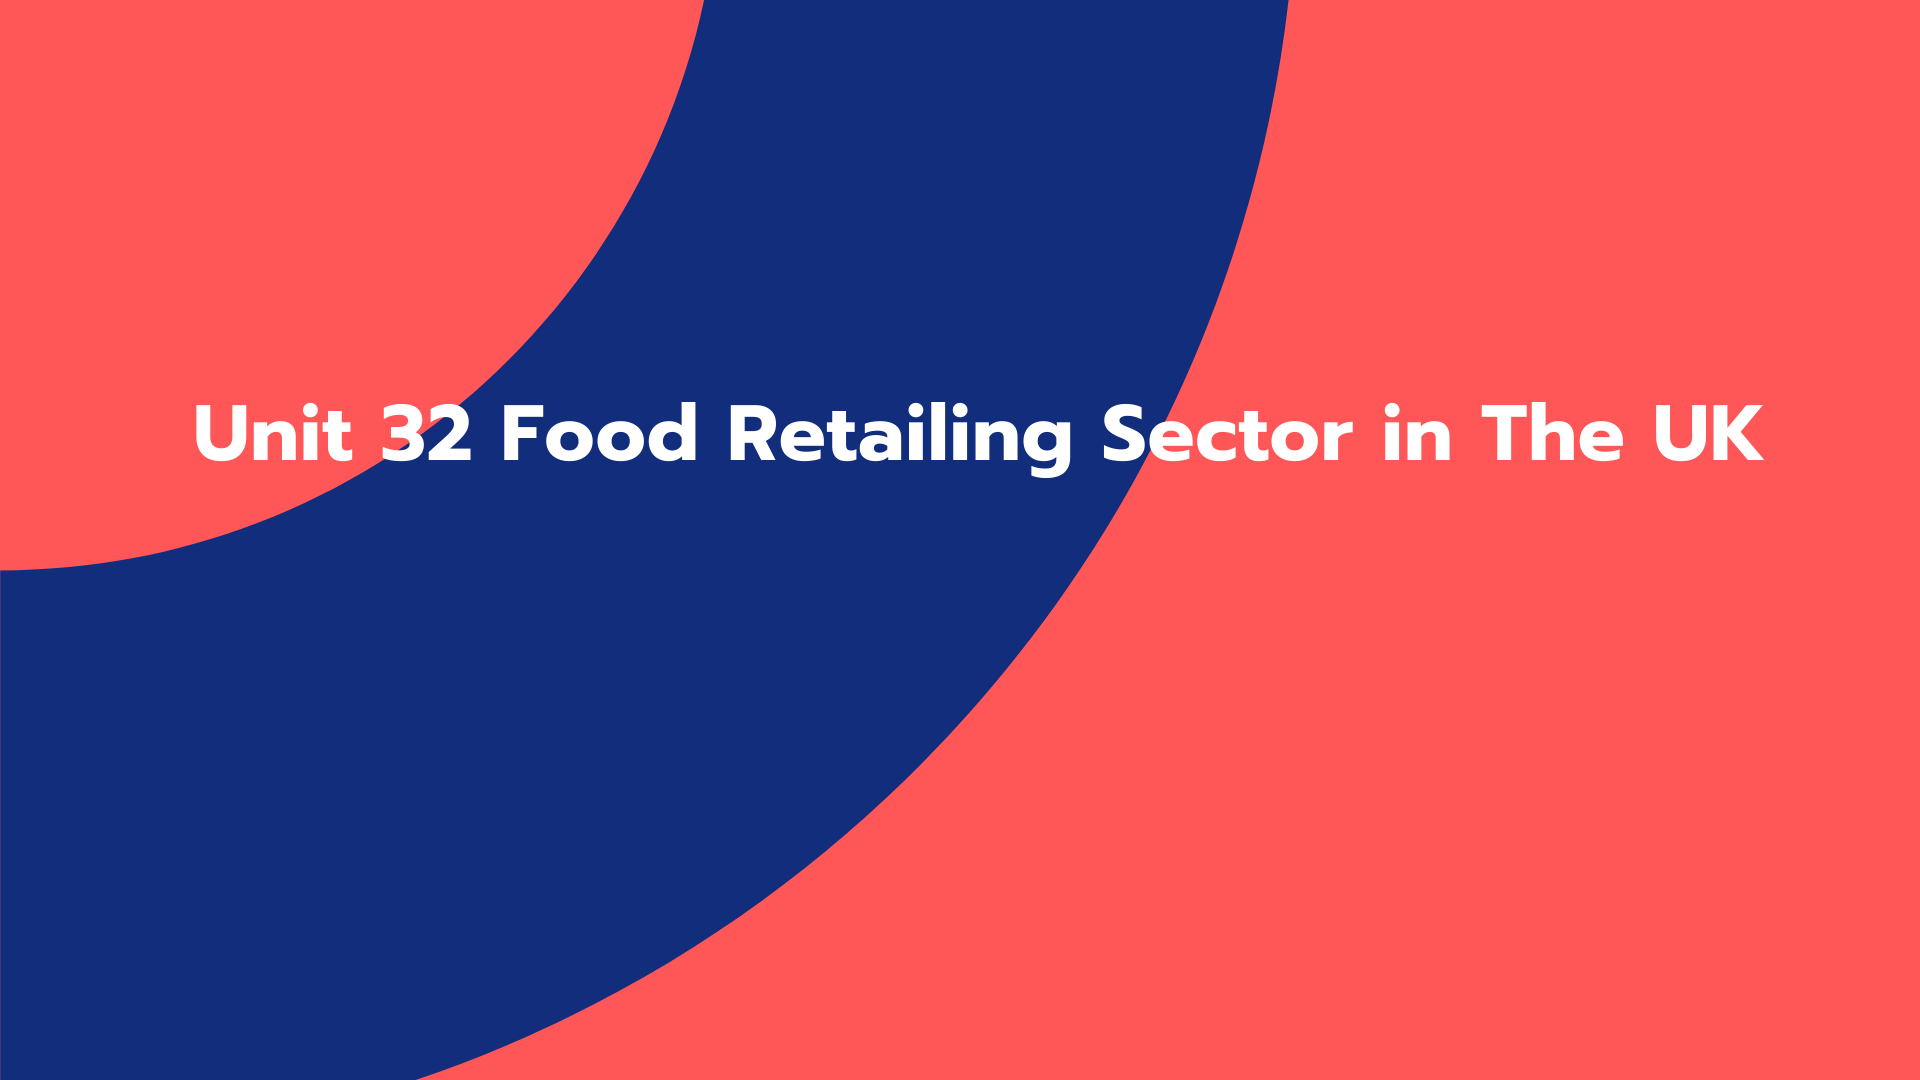 Unit 32 Food Retailing Sector in The UK